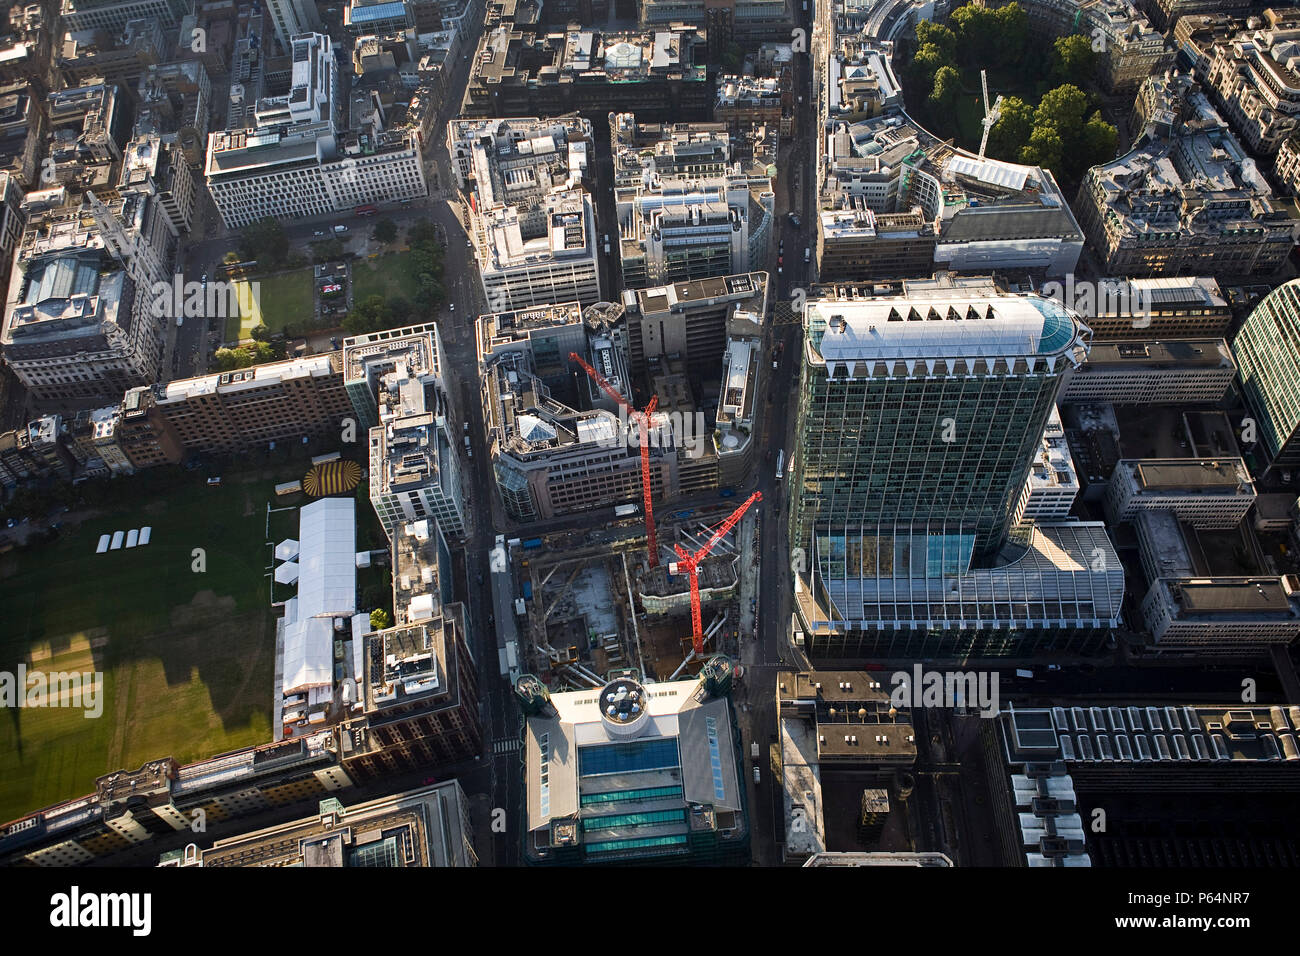 Aerial view of Citypoint & Ropemaker Place, London - Stock Image